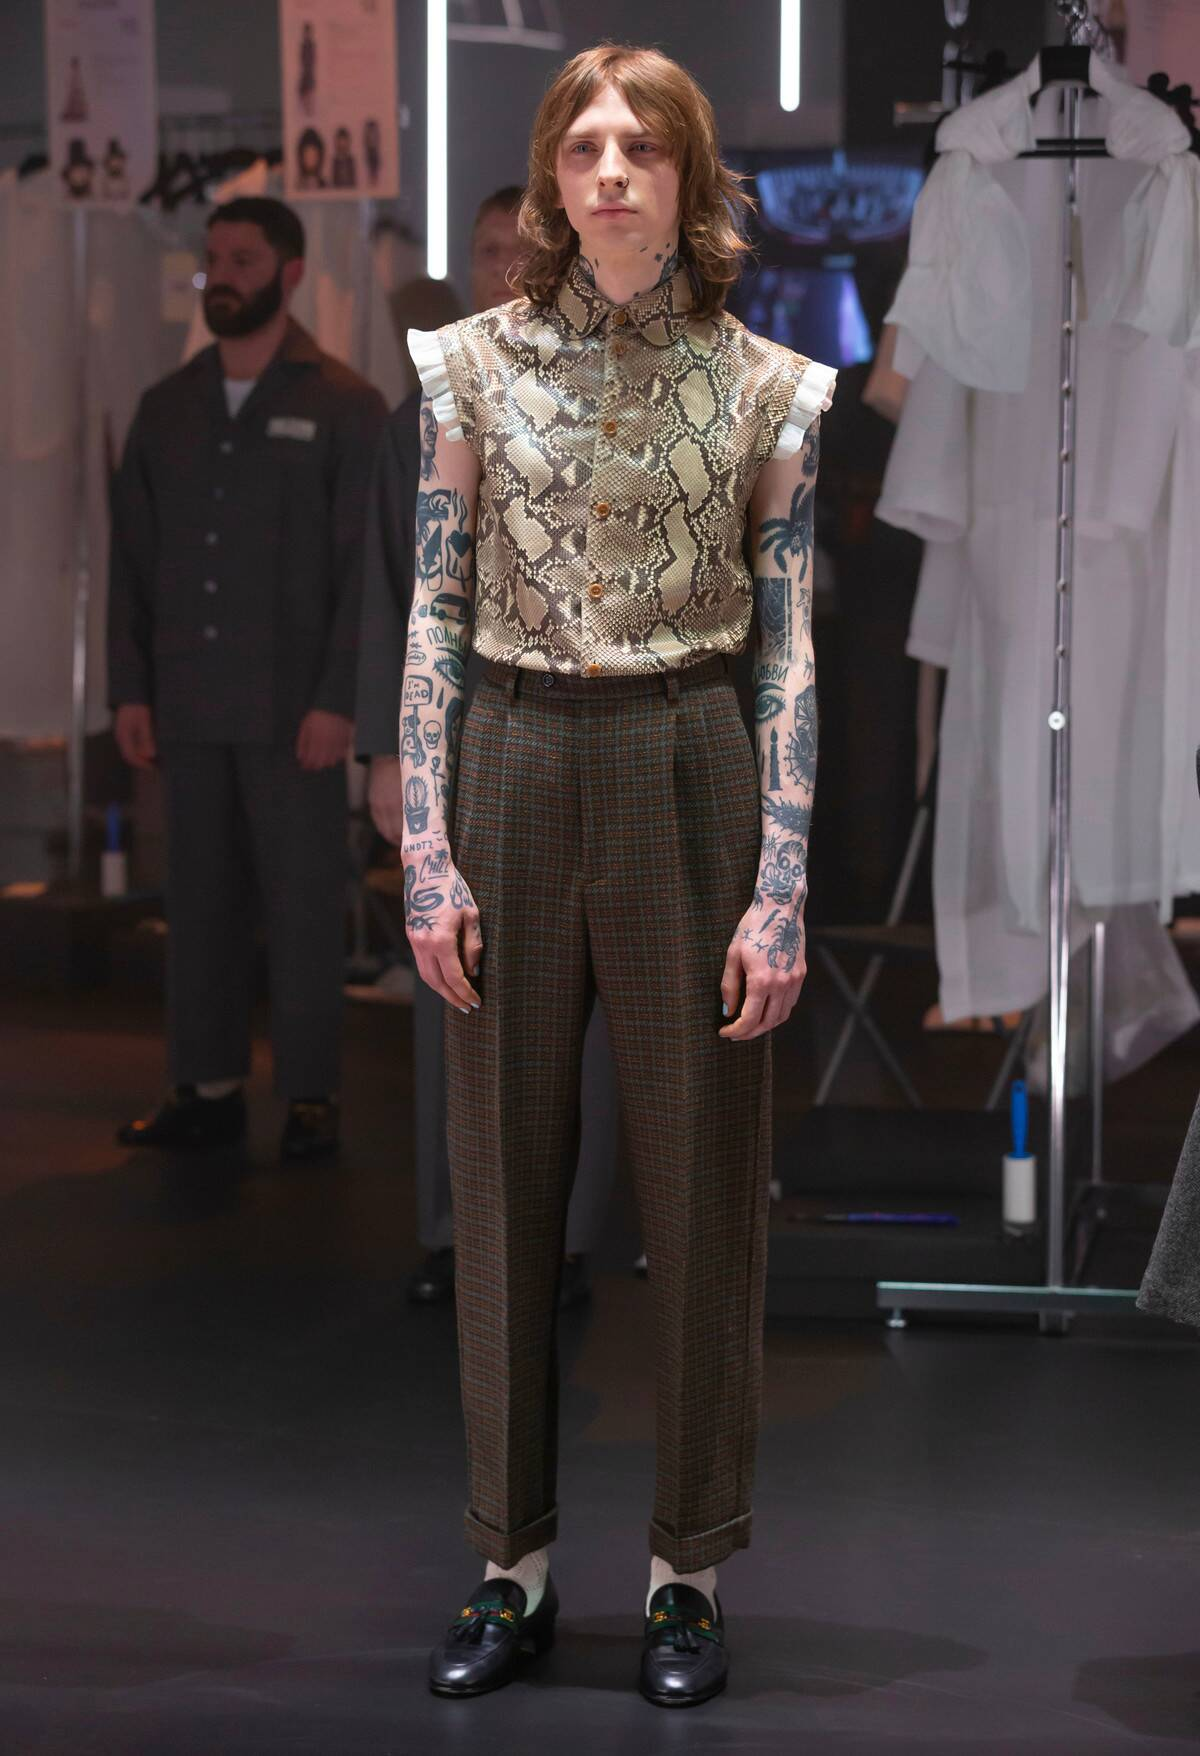 fashion trends, fashion news, sustainable fashion trends, sustainable trends, Sustainable marketing trends, sustainable fashion, fashion industry, marketing, collection, Autumn, Winter, 2020, 2021, Autumn/Winter 2020-2021, sustainability, creative direction, social media, marketing trends, top marketing trends of 2020, Gucci, Stella McCartney, Nanushka, Vivienne Westwood, Stella Jean, Mother of Pearl, sustainable storytelling, visual communication, millennials, gen z, diversity, inclusive, inclusivity